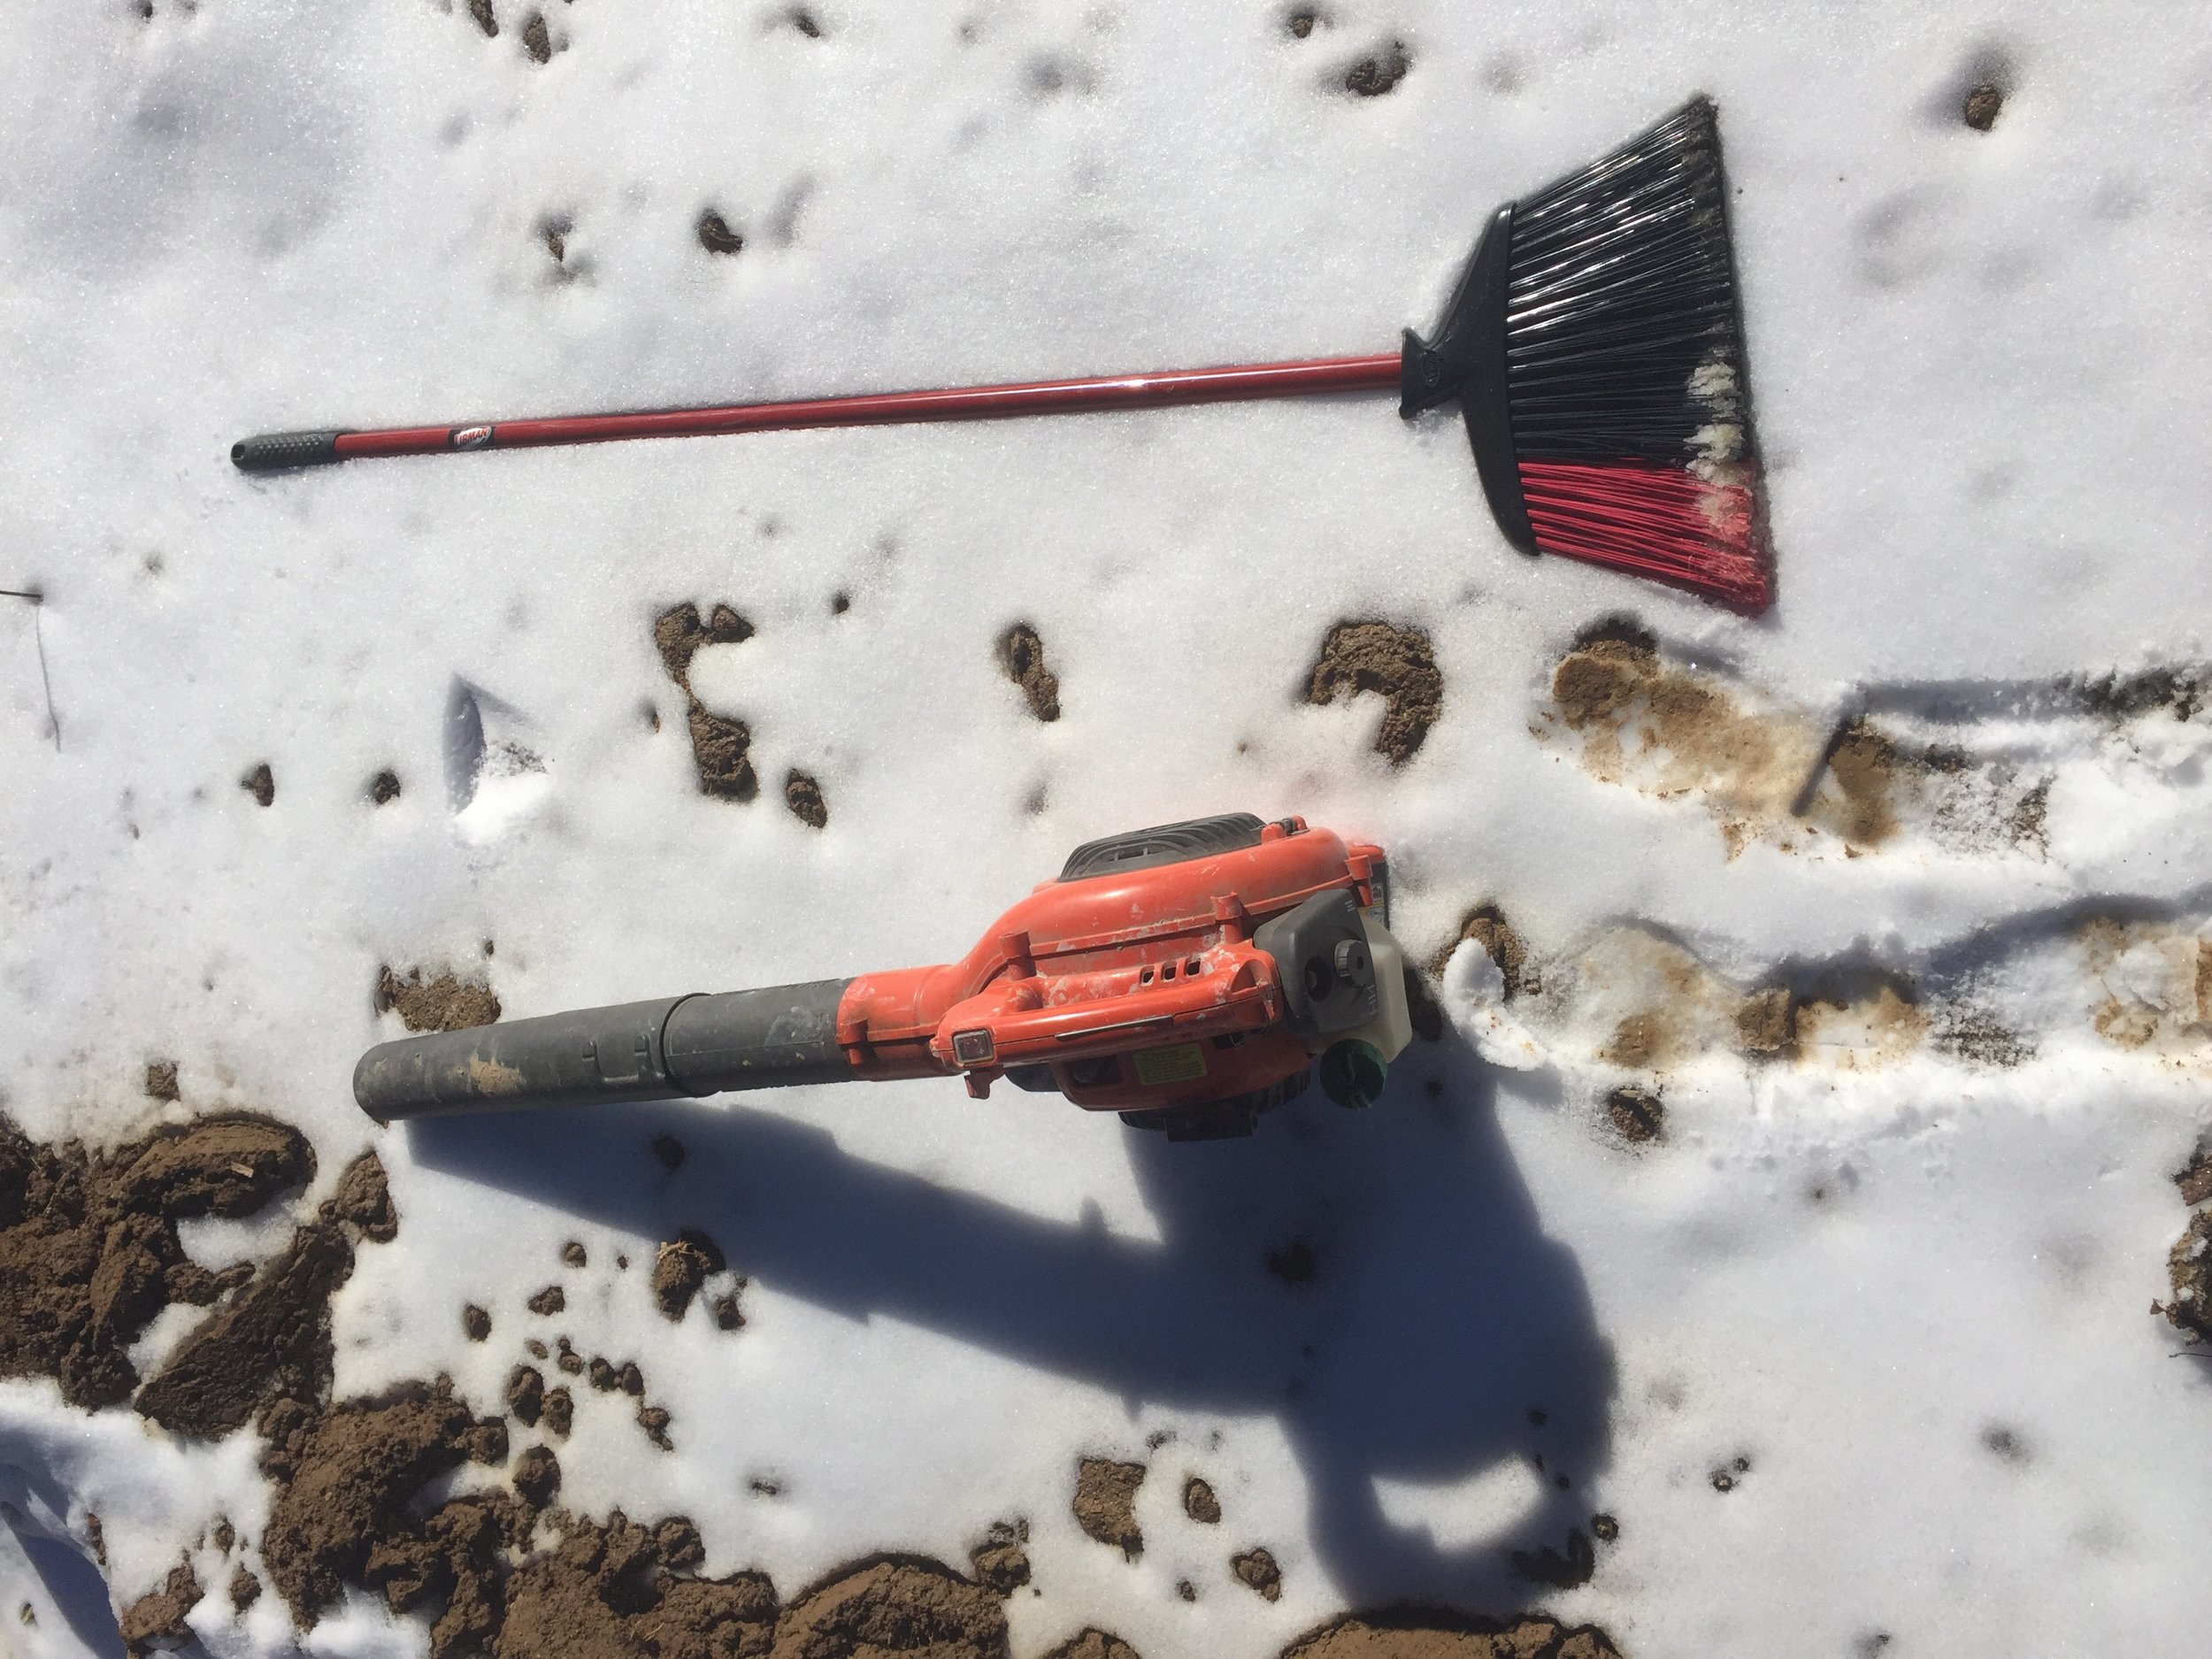 A broom and a leaf blower help clear away melting snow. But a light hand and a careful operator are also important!